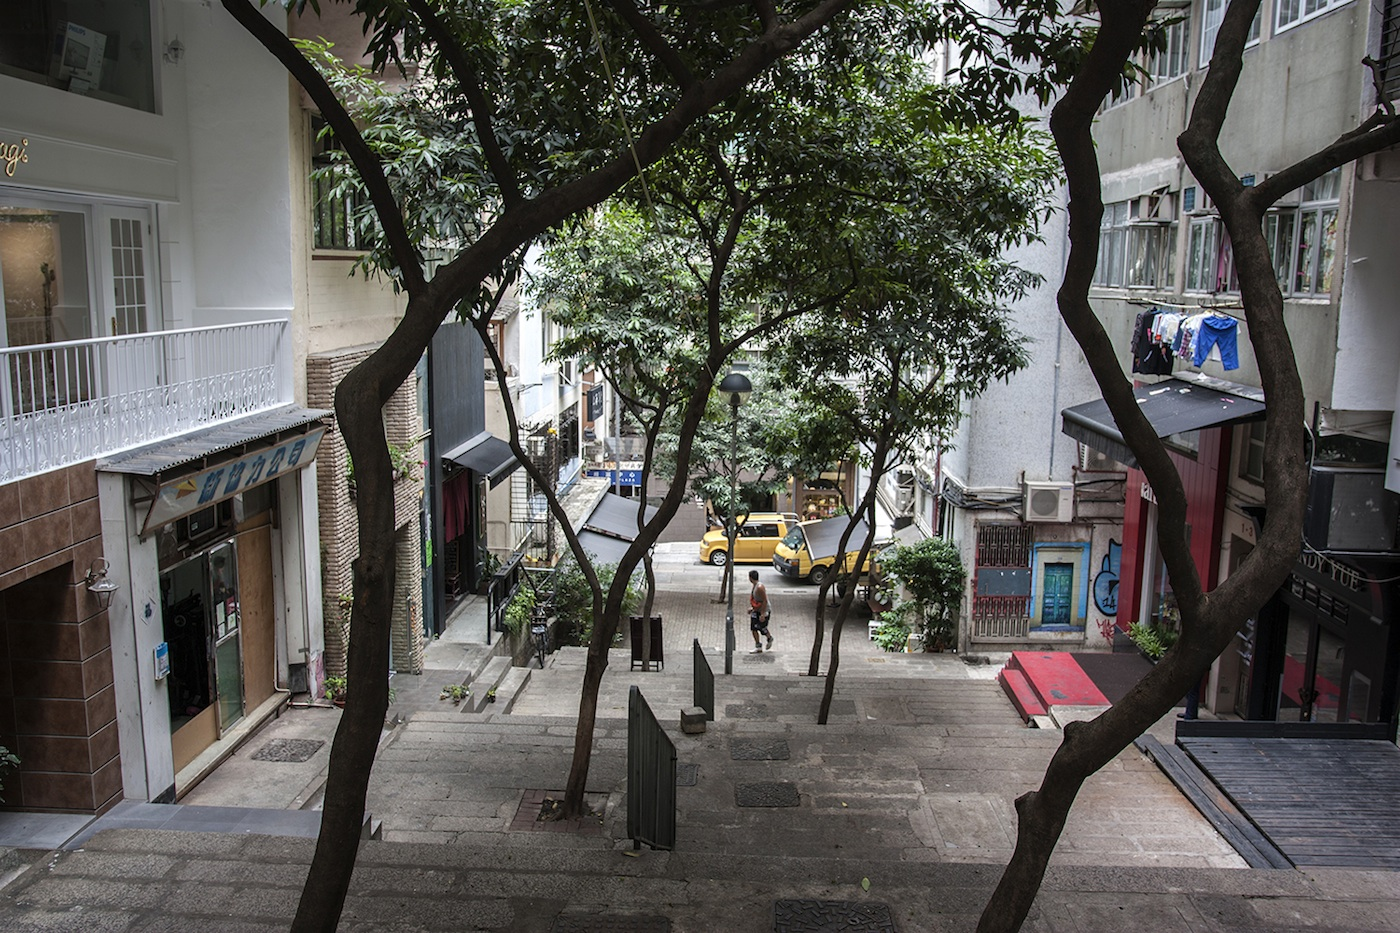 Shin Hing Street in Sheung Wan - Photograph by Christopher Dewolf